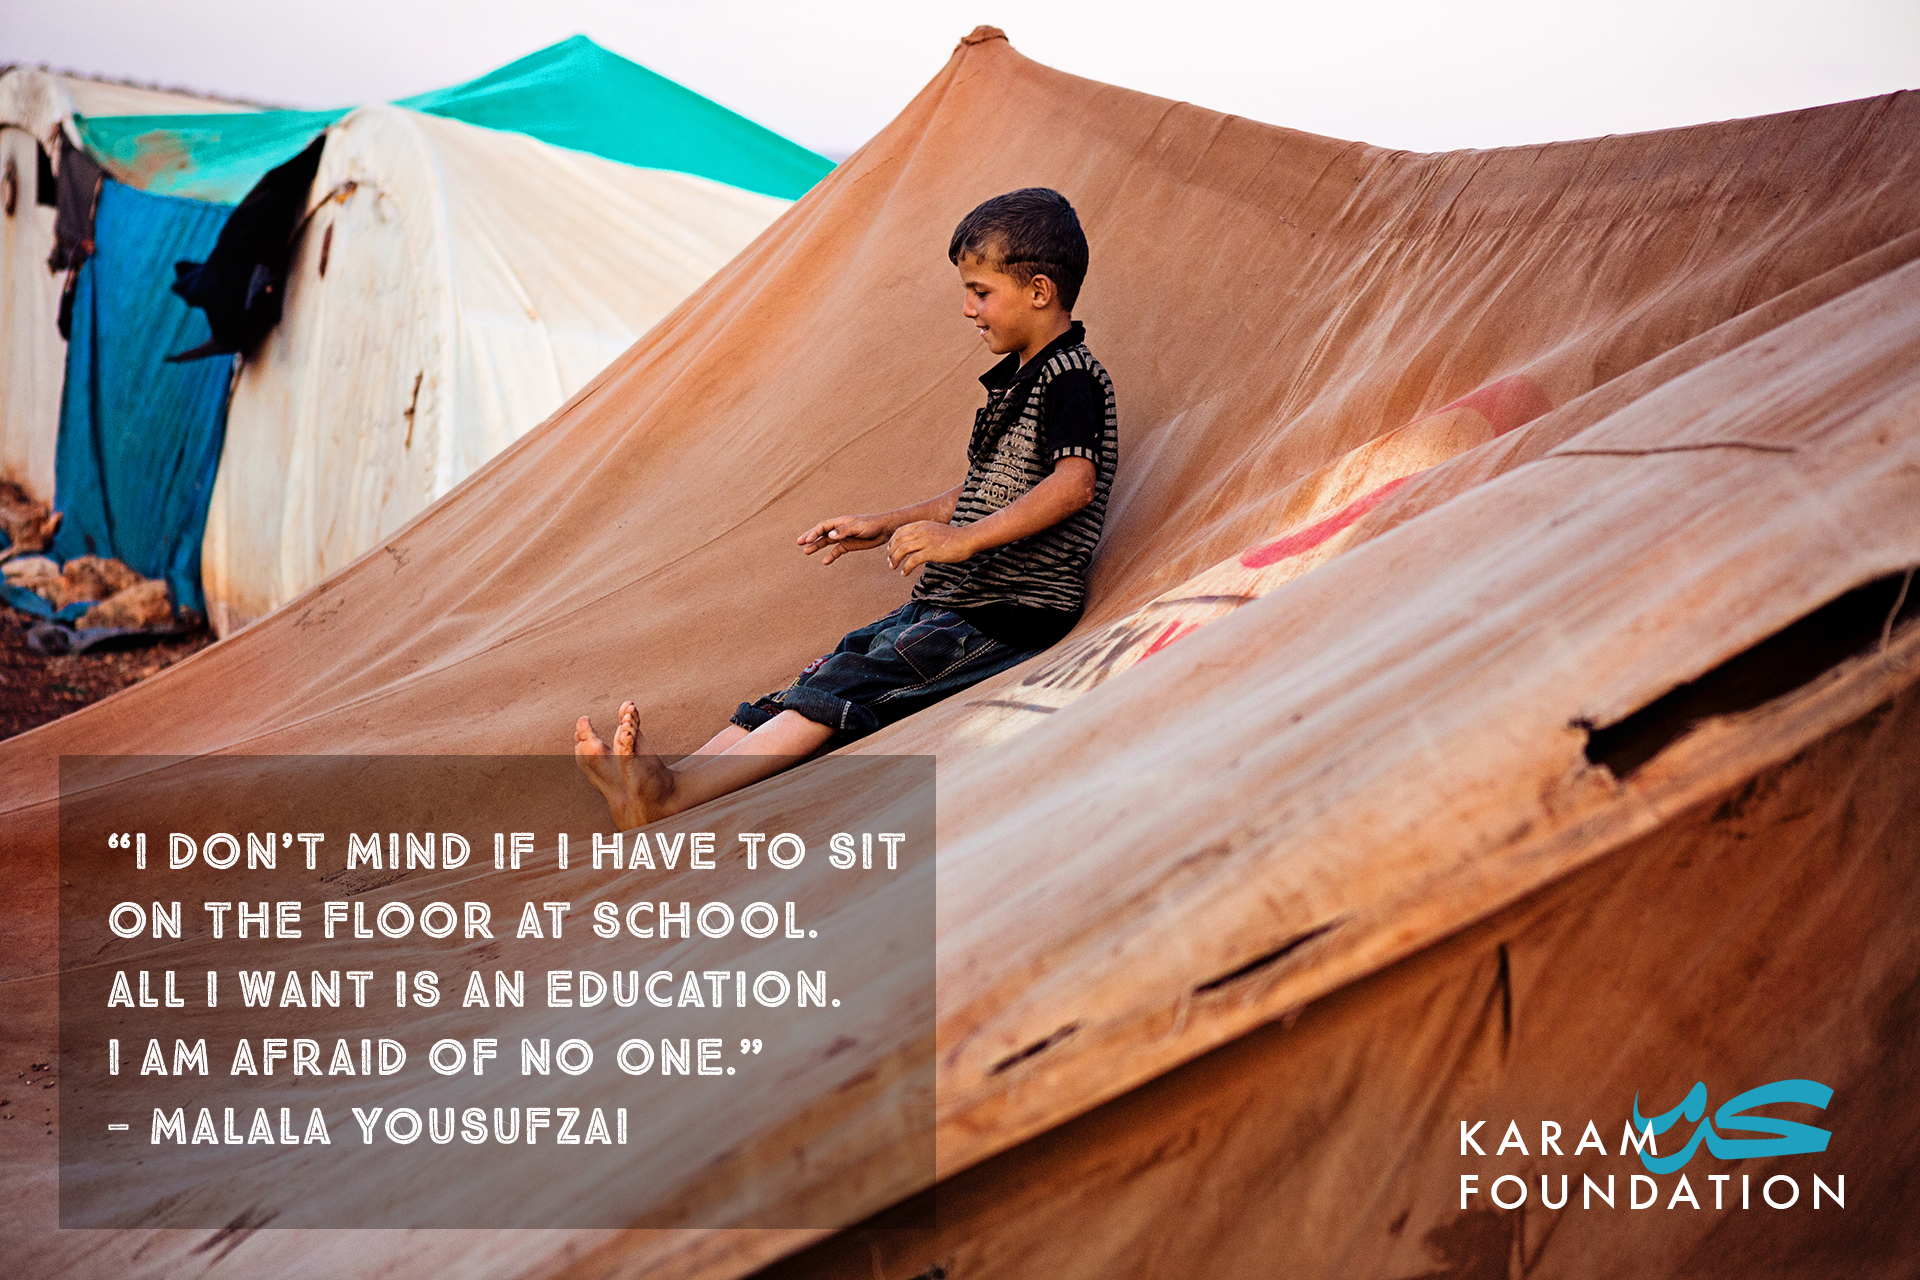 All photos of these resilient Syrian refugee children featured here,were taken by Karam Lead Photographer Mohamad Ojjeh in Atmeh, Syria - home to Syria's largest Internally Displaced Refugee (IDP)Camp.ALL RIGHTS RESERVED 2013 - 2015